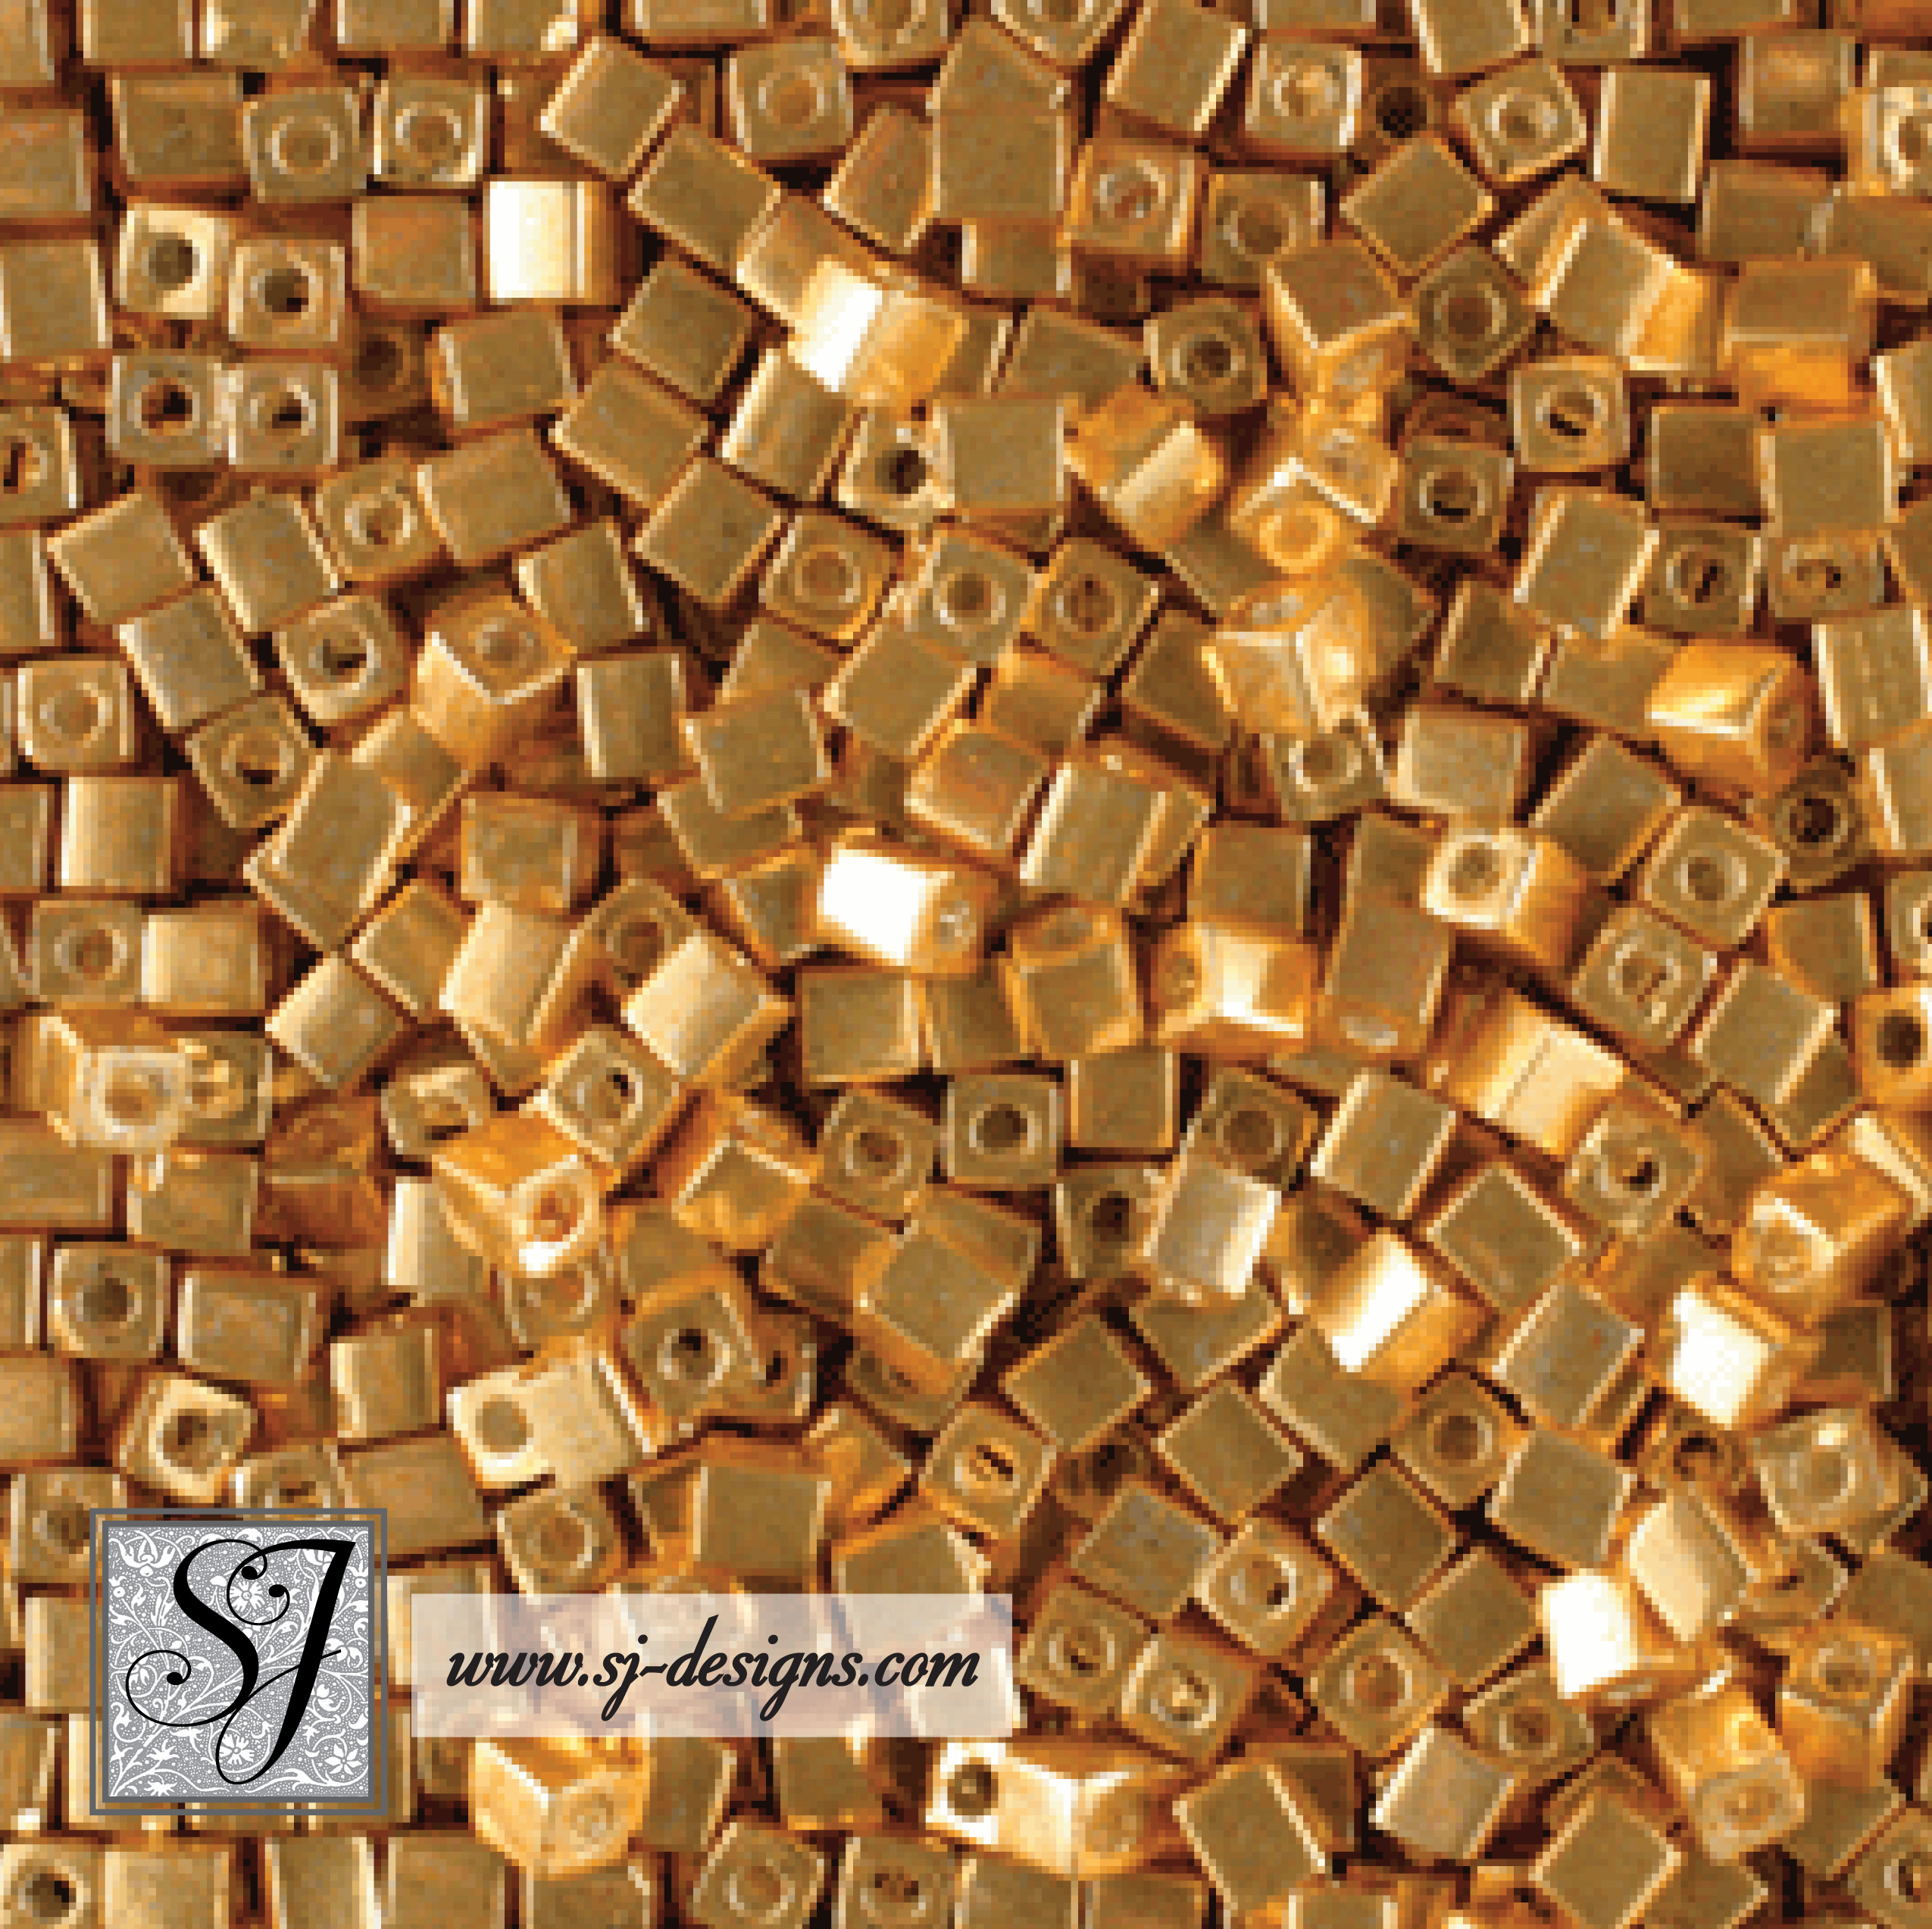 1.5mm & 3mm Square Beads